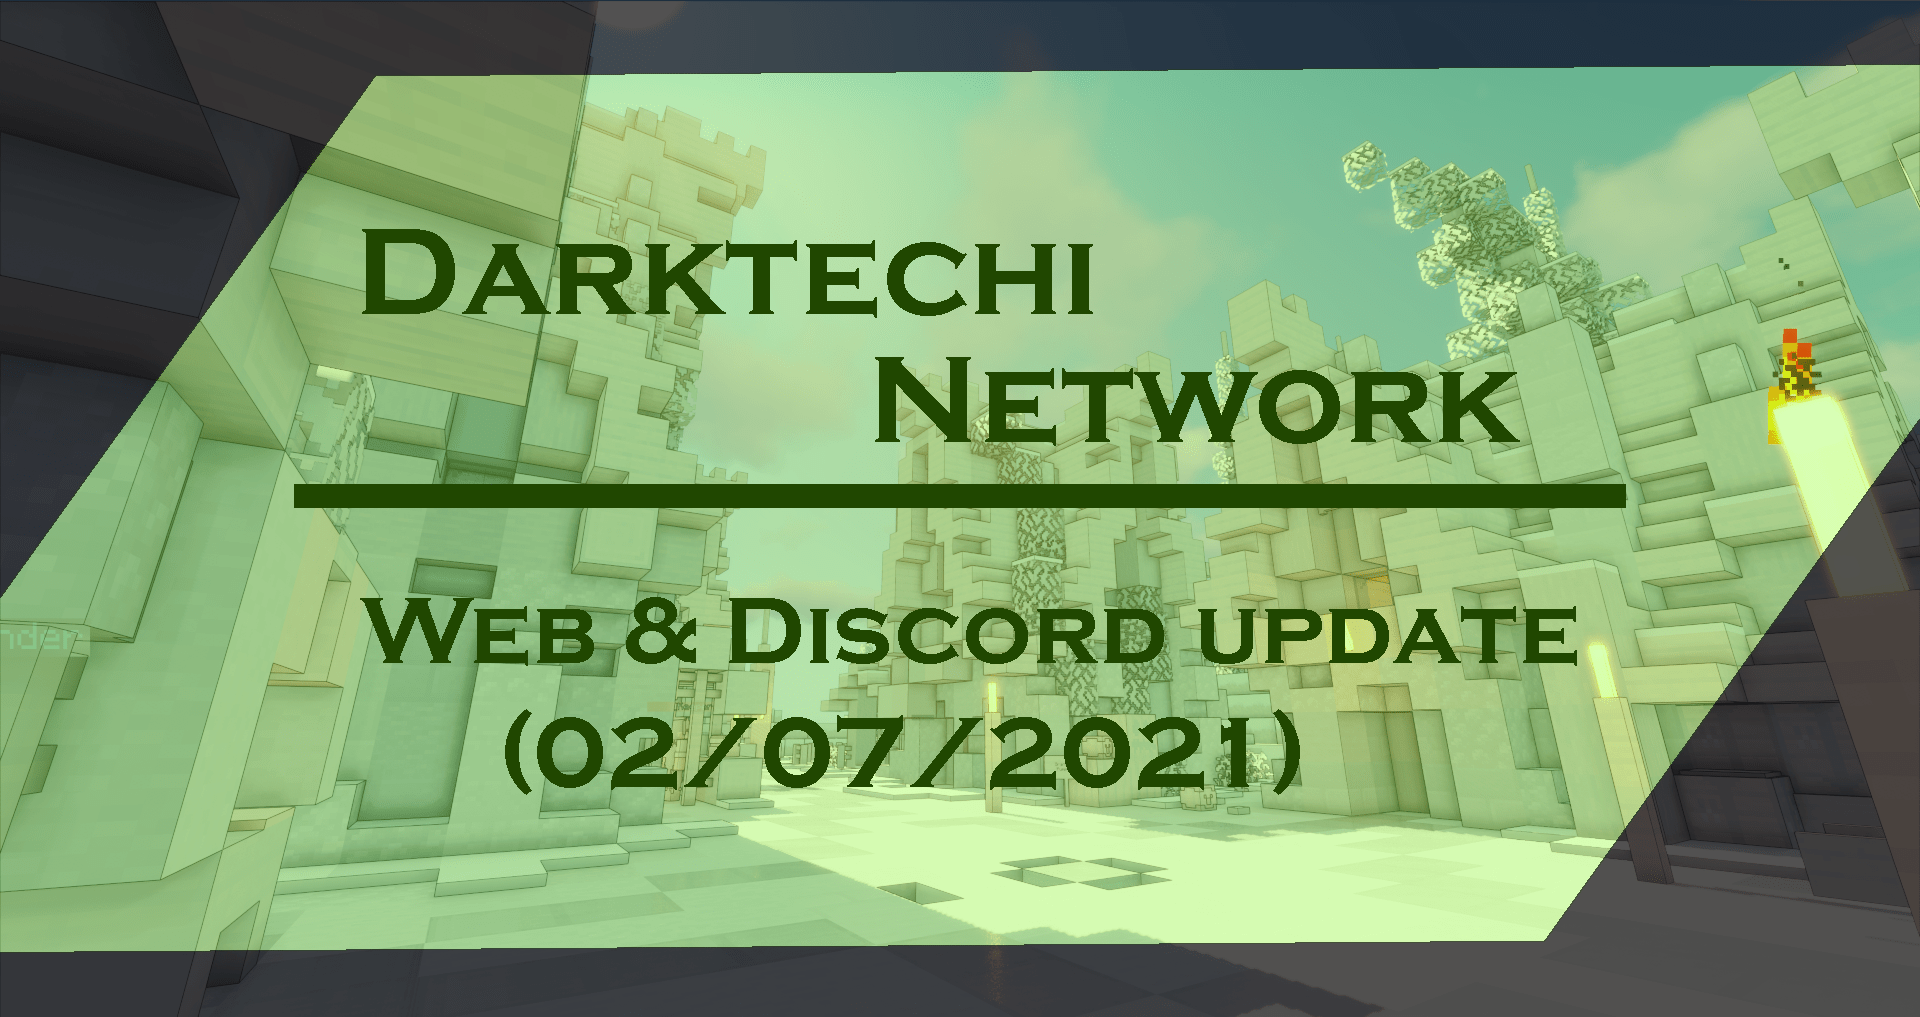 Darktechi Update | Web & Server update (02/07/2021)